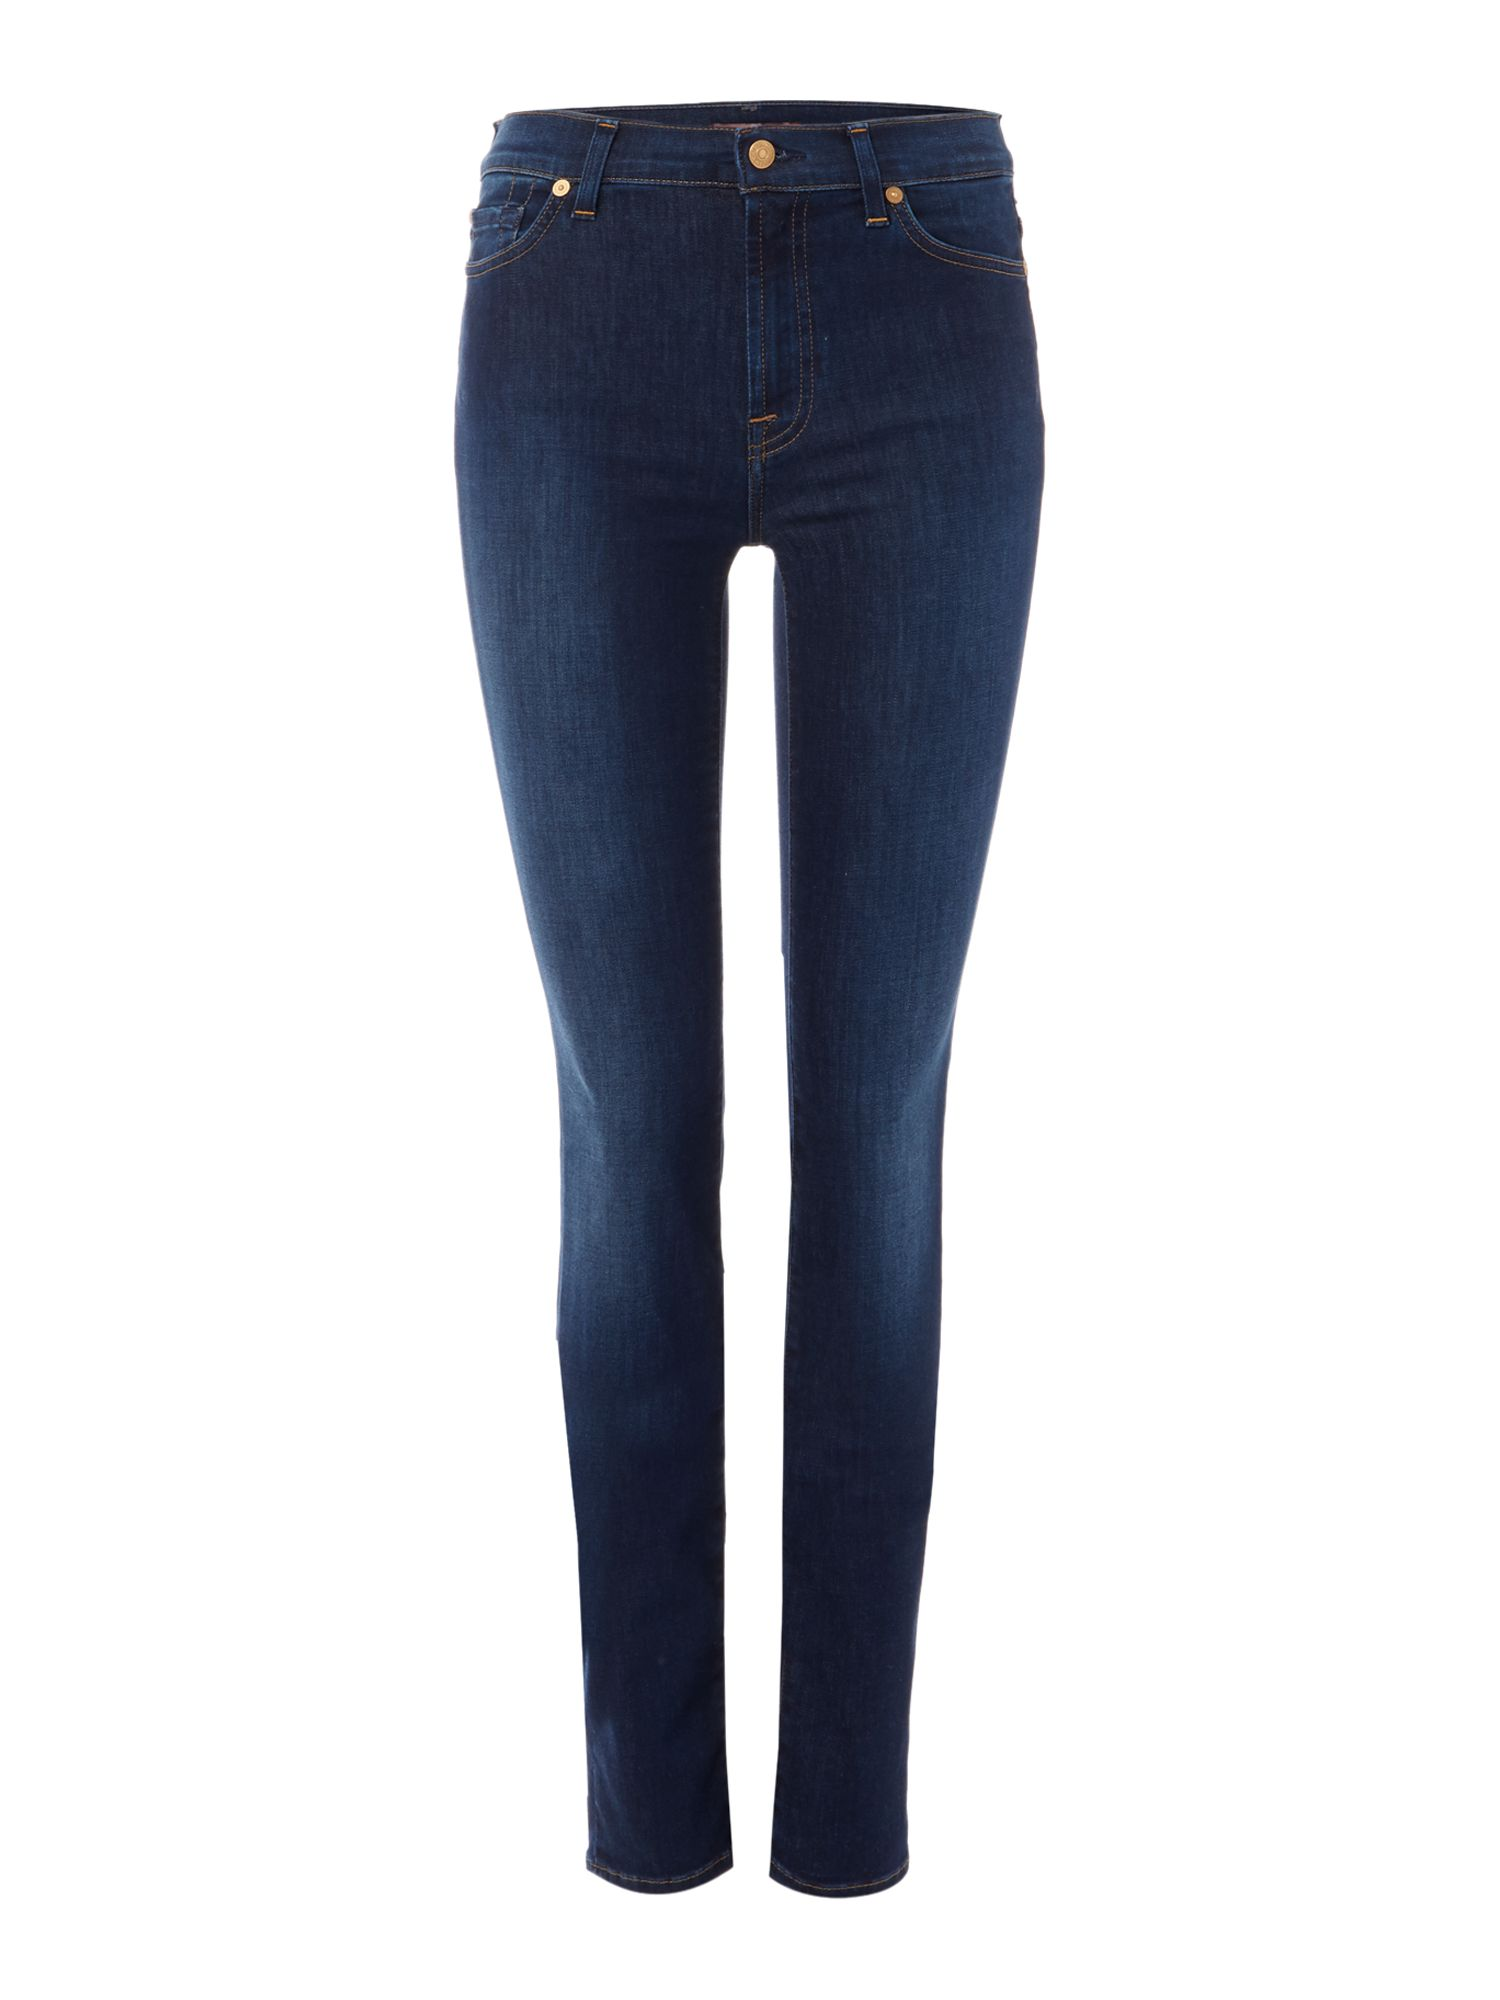 7 For All Mankind 7 For All Mankind Rozie high rise skinny jeans in long boston blue, Denim Mid Wash